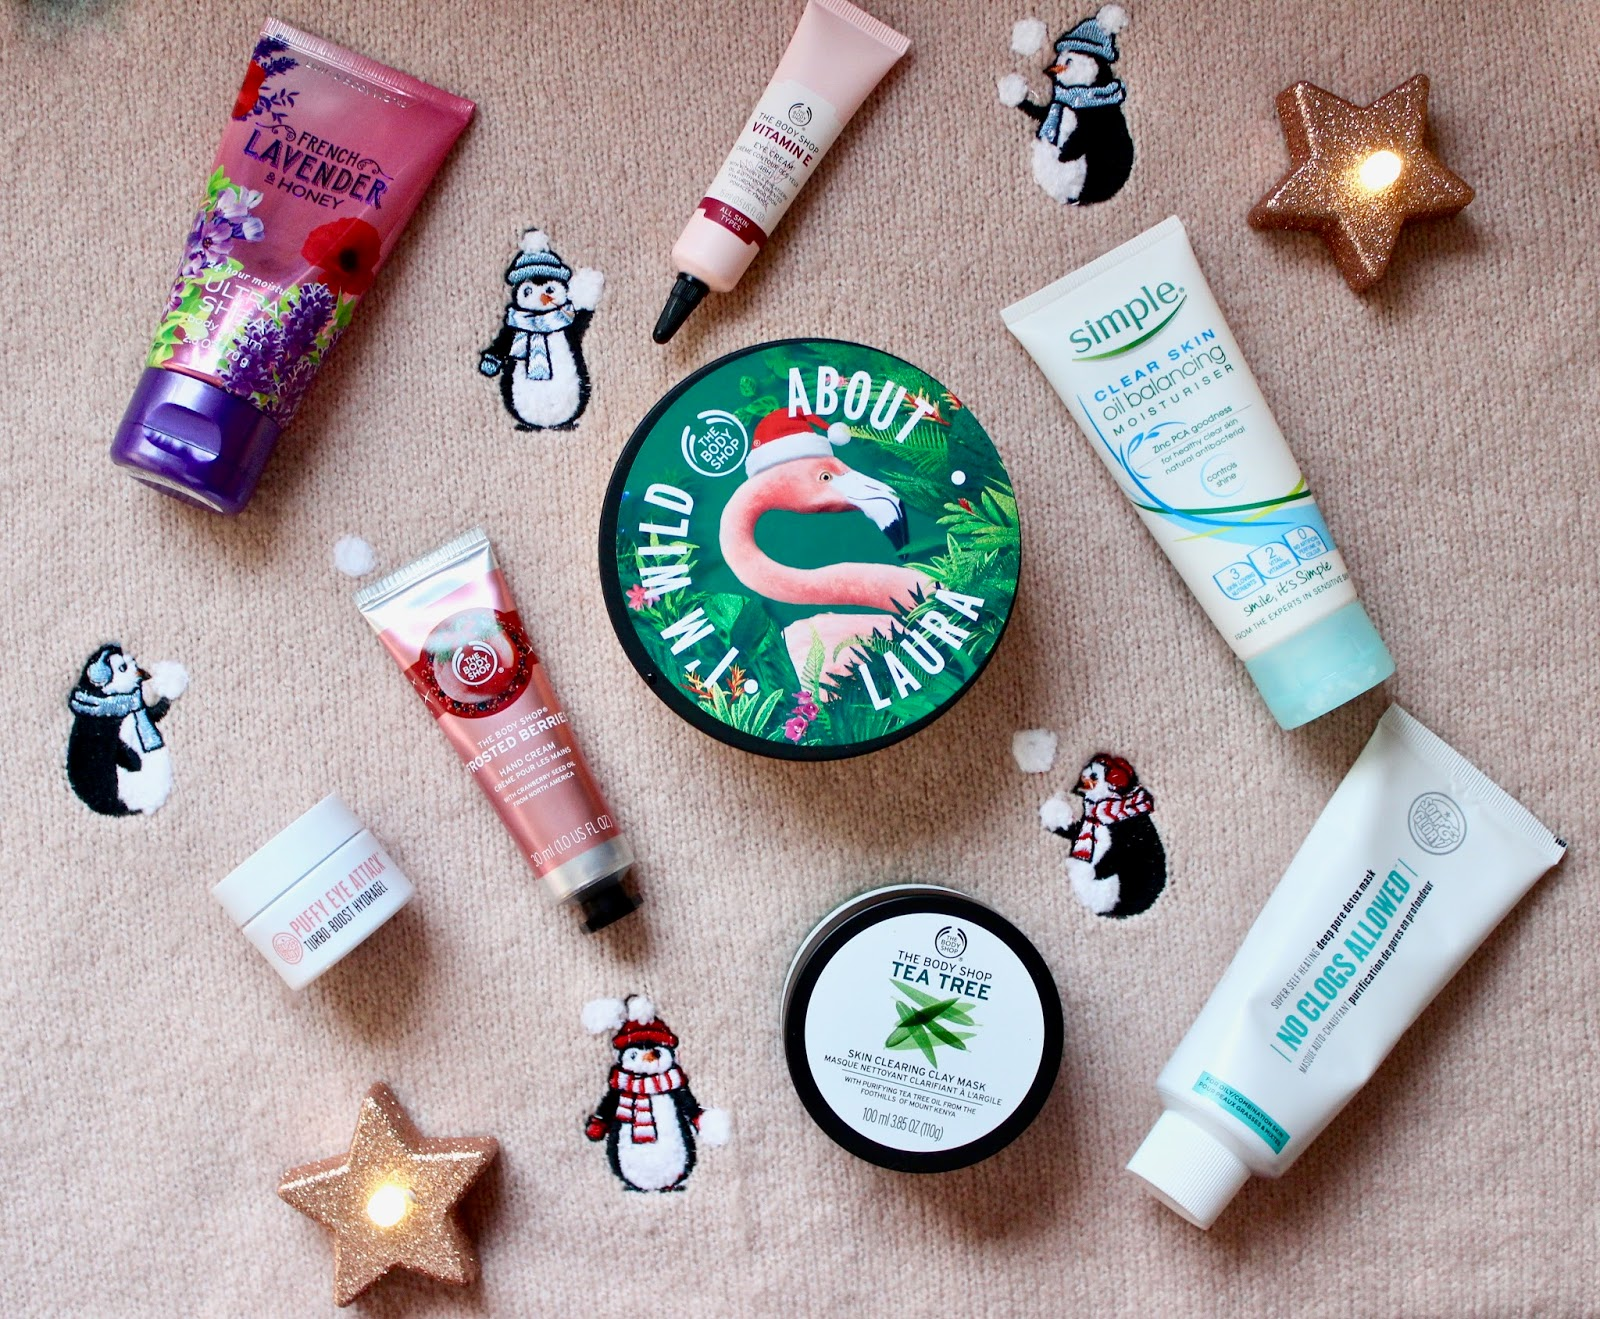 Products from The Body Shop, Bath&Body Works and Soap&Glory